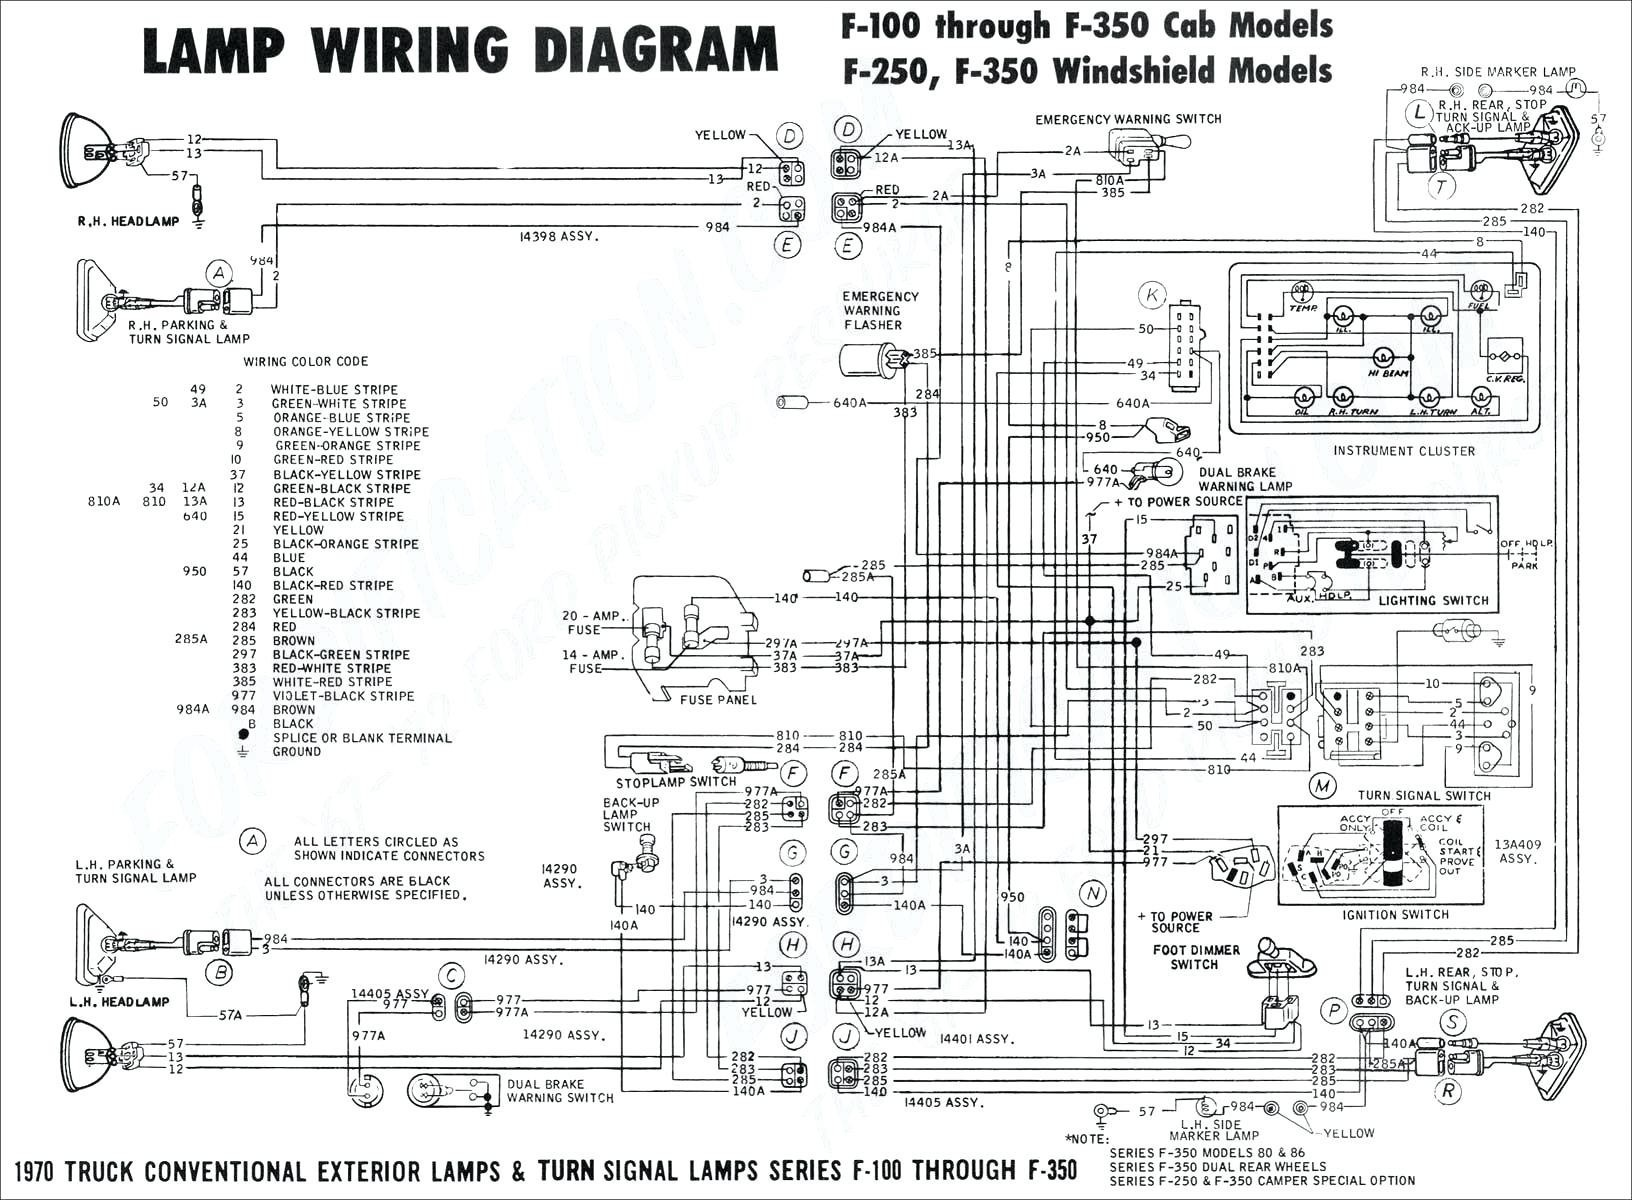 Ford F150 Tail Light Wiring Diagram Wiring Diagram for Automotive Lights New Stop Turn Tail Light Wiring Of Ford F150 Tail Light Wiring Diagram Volvo Lights Wiring Diagram Custom Wiring Diagram •